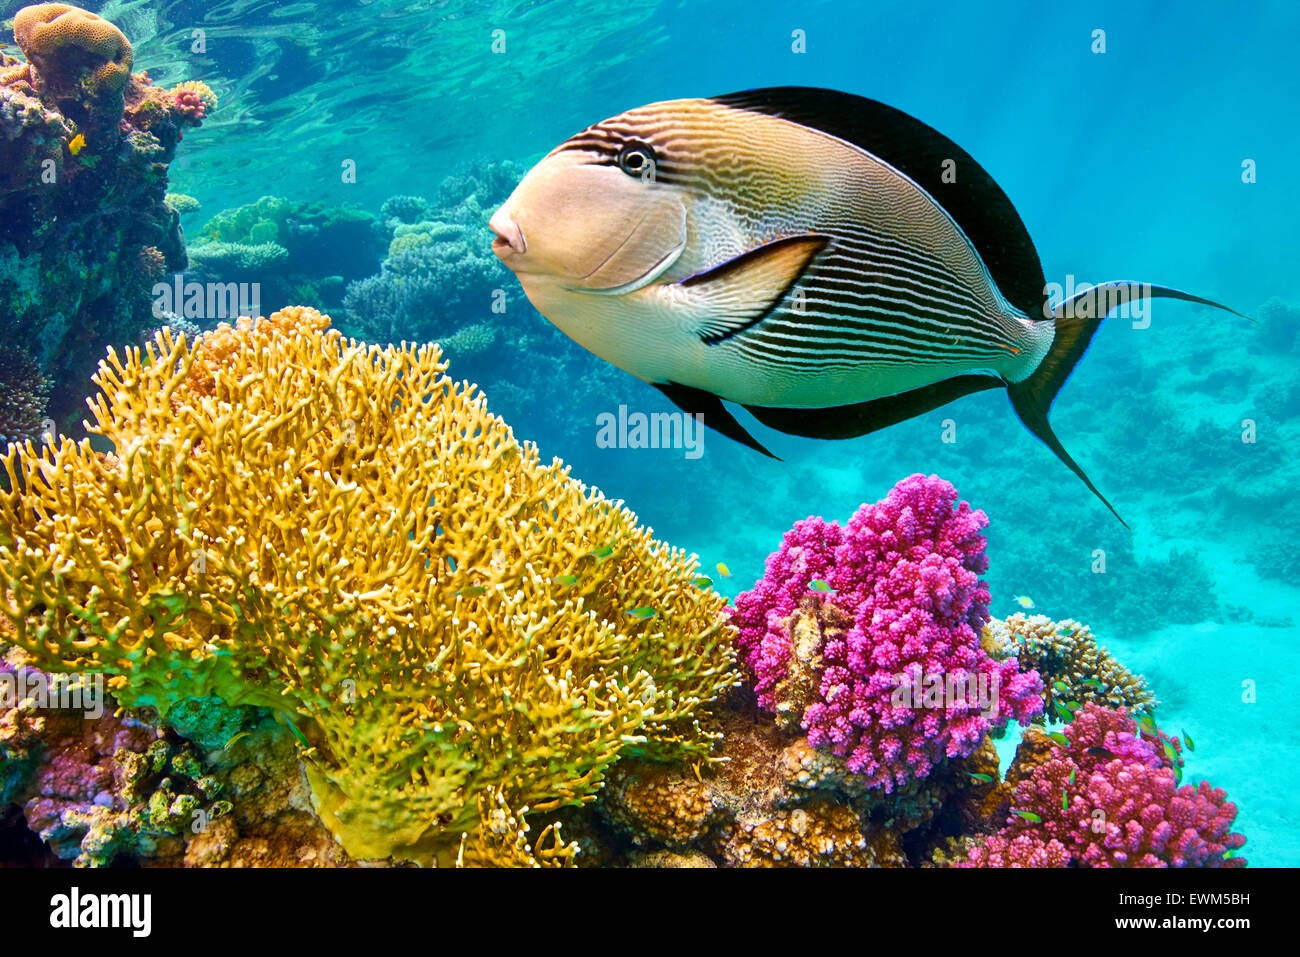 Red Sea - underwater view at fishes and coral reef, Marsa Alam, Egypt - Stock Image